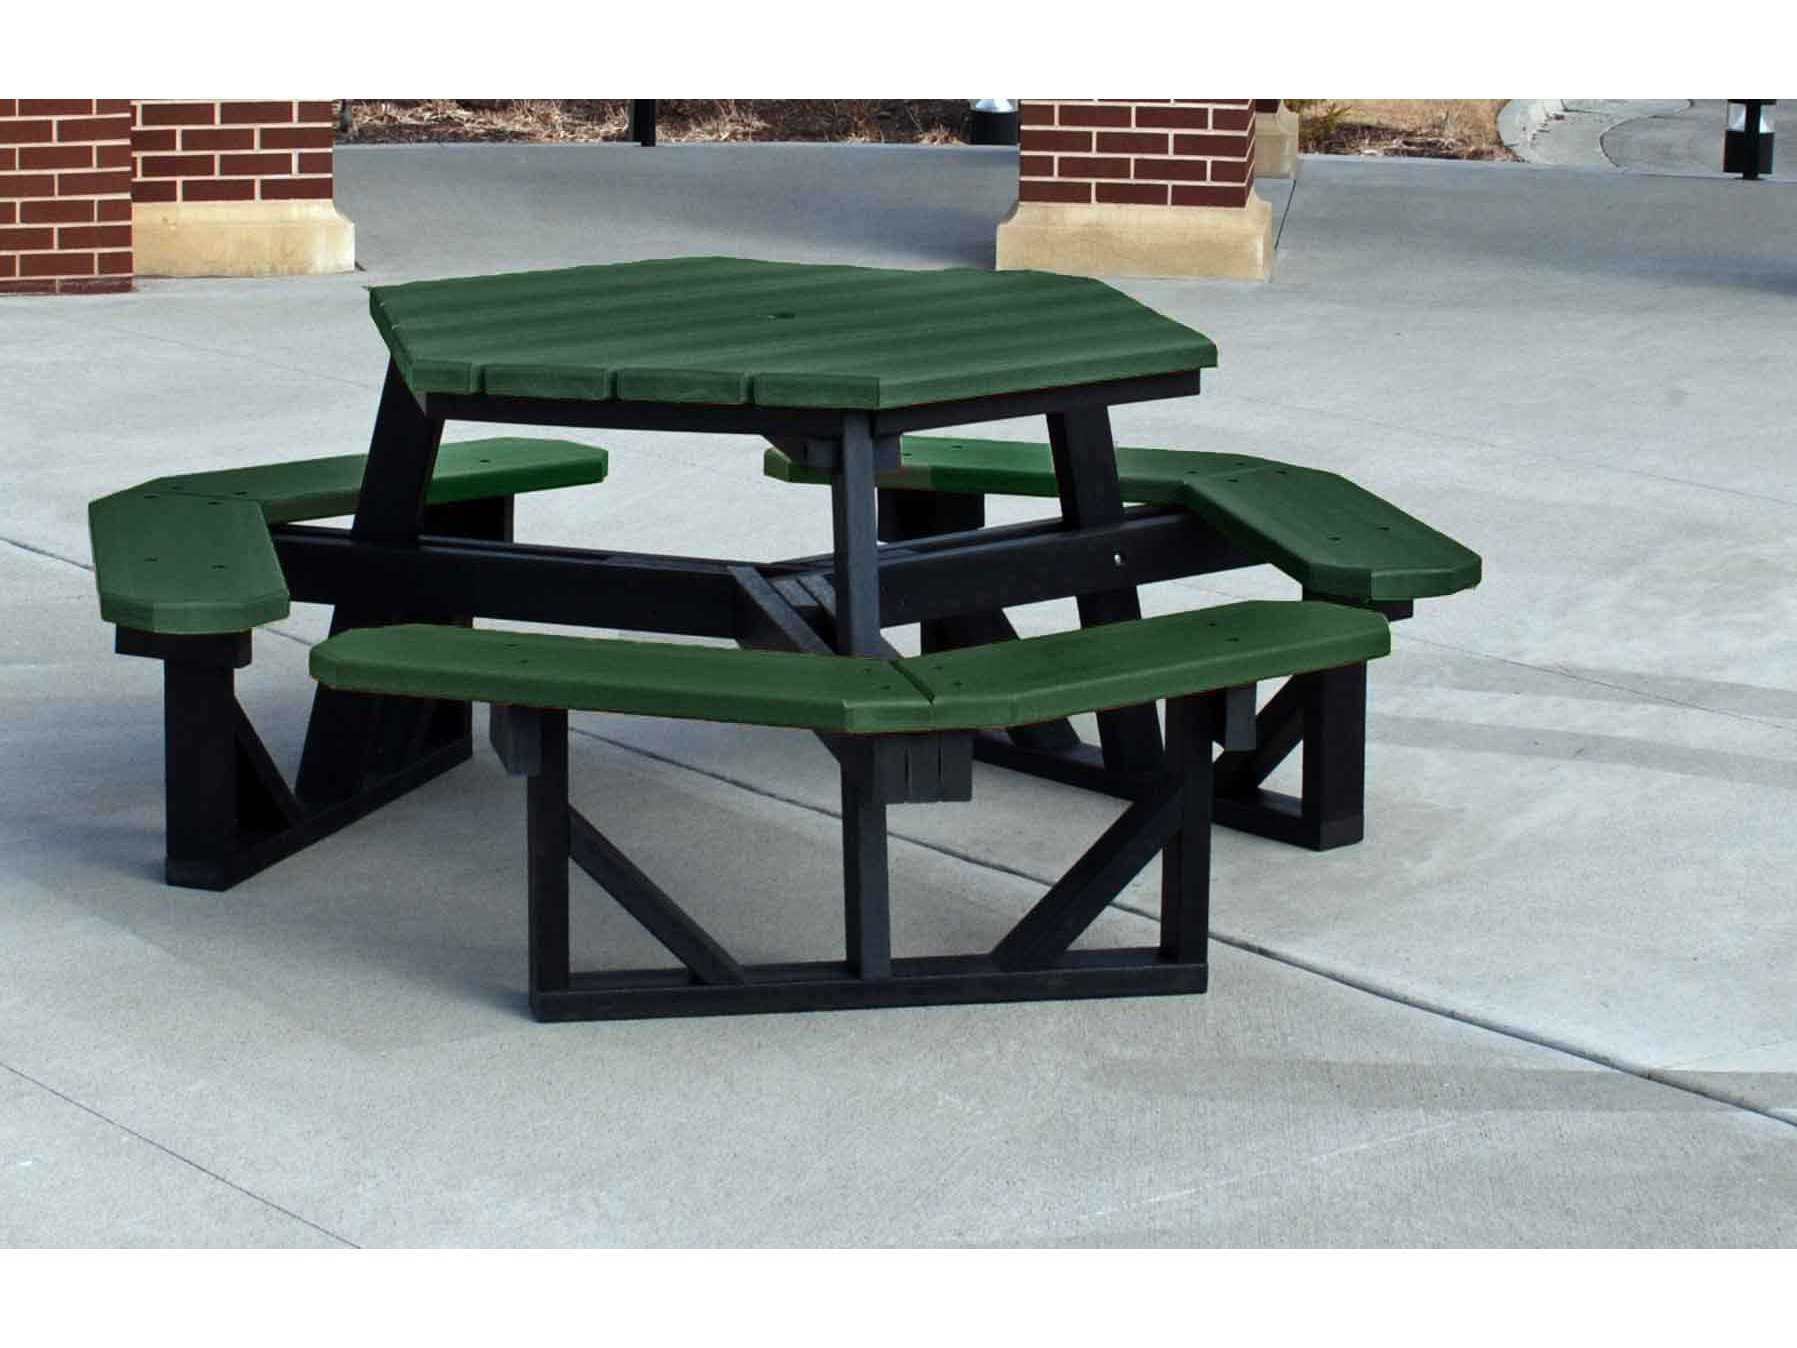 Frog Furnishings Hex Recycled Plastic 6 ft 69 5 x 69 5 Hexagon